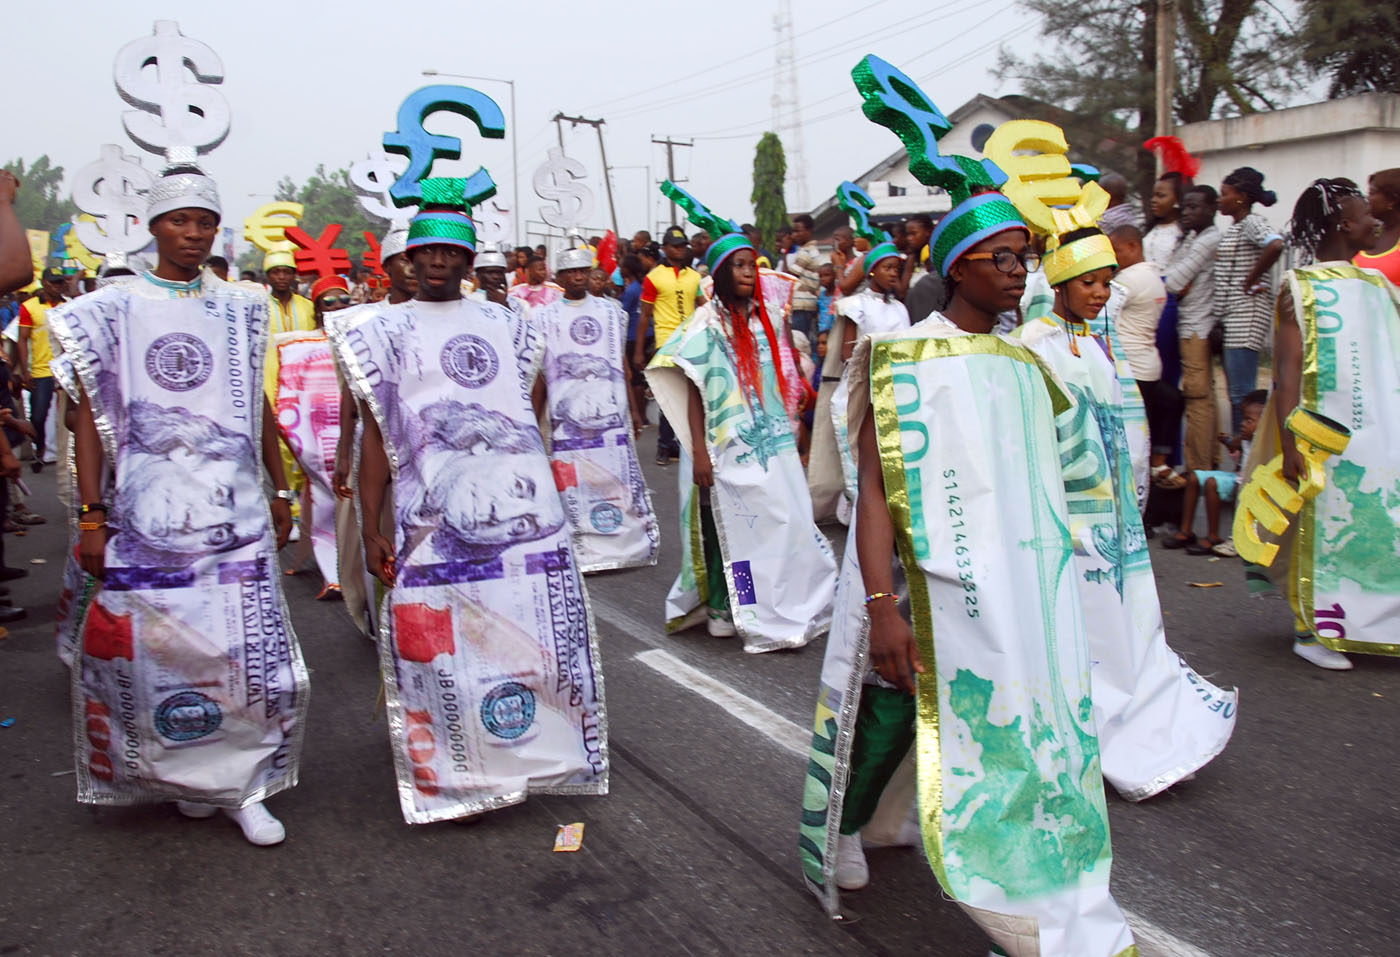 Members of Freedom Band wearing Foreign Currency Costume during the Main Event of the 2017 Carnival Calabar in Cross River State Yesterday. Photo: Nwankpa Chijioke